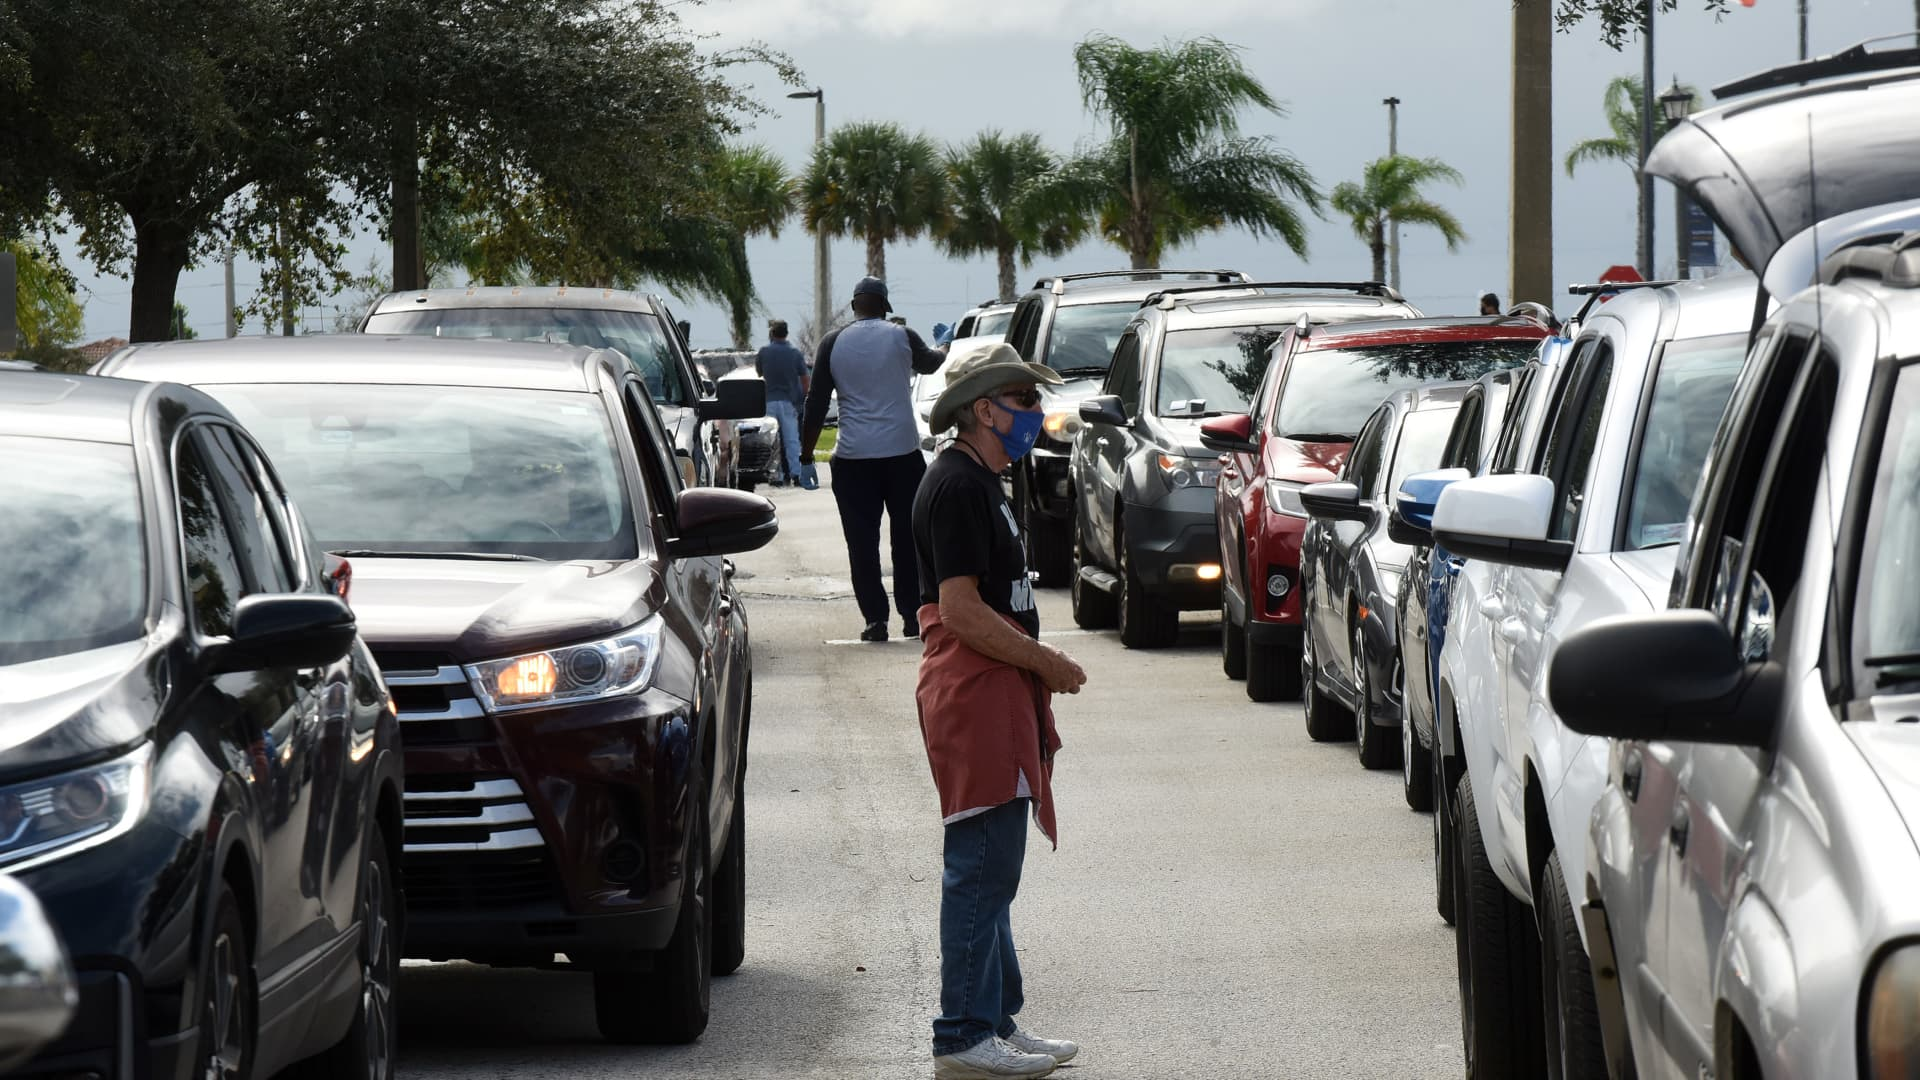 Volunteers direct traffic as residents line up in their cars at a food distribution site at Lake-Sumter State College sponsored by the Second Harvest Food Bank of Central Florida and local churches.